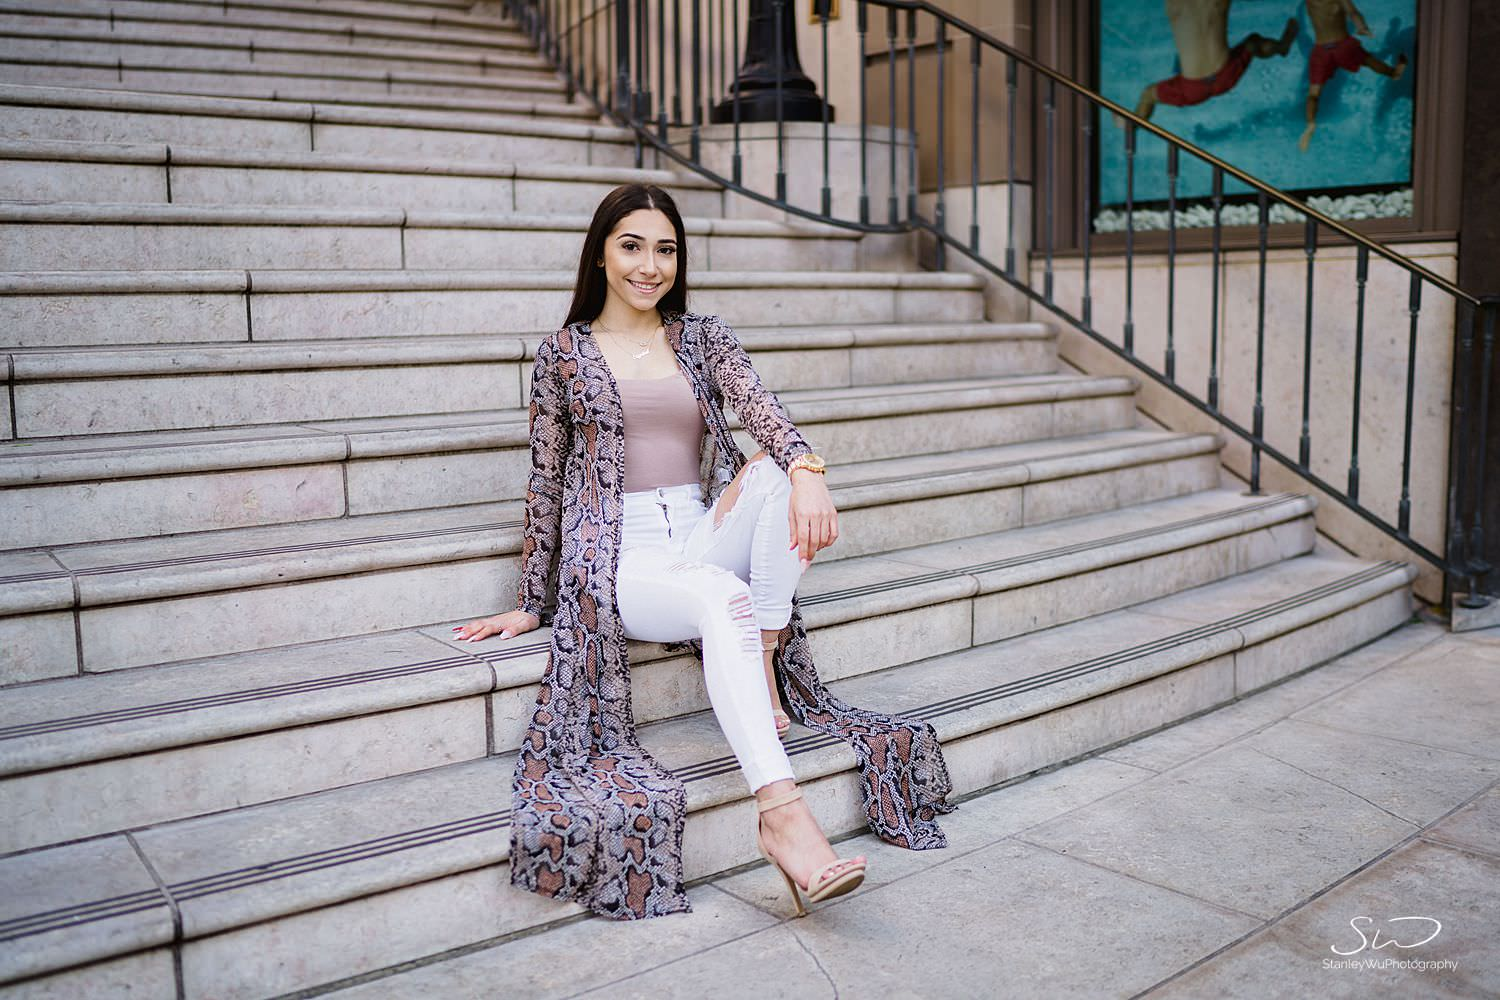 los angeles urban lights rodeo drive high school senior portraits